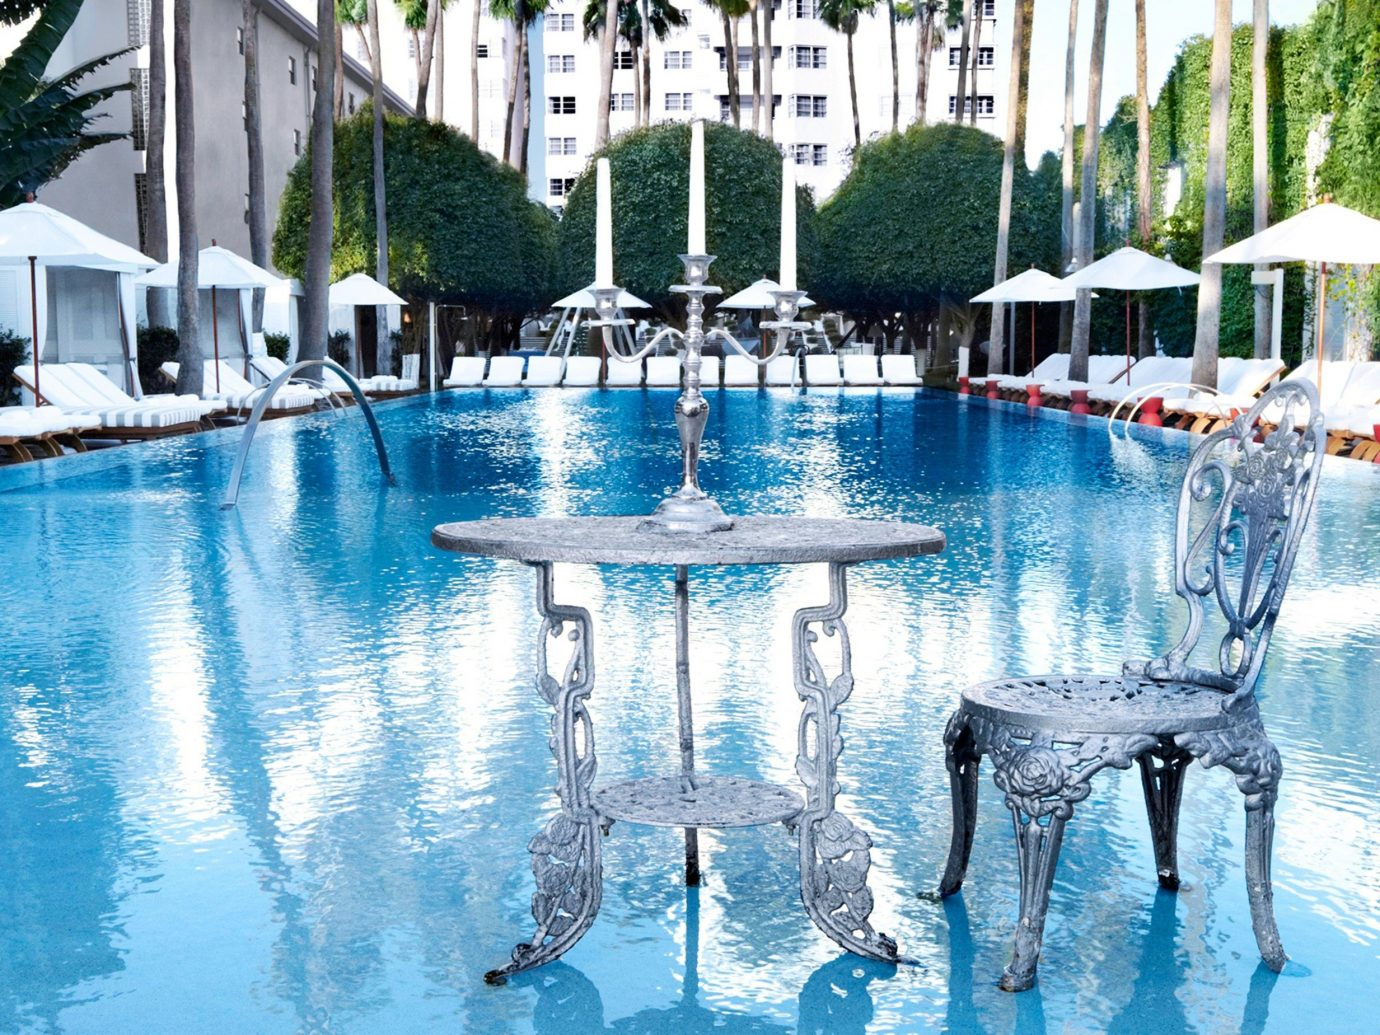 Hotels tree water swimming pool outdoor leisure reflecting pool Resort water feature reflection estate backyard swimming